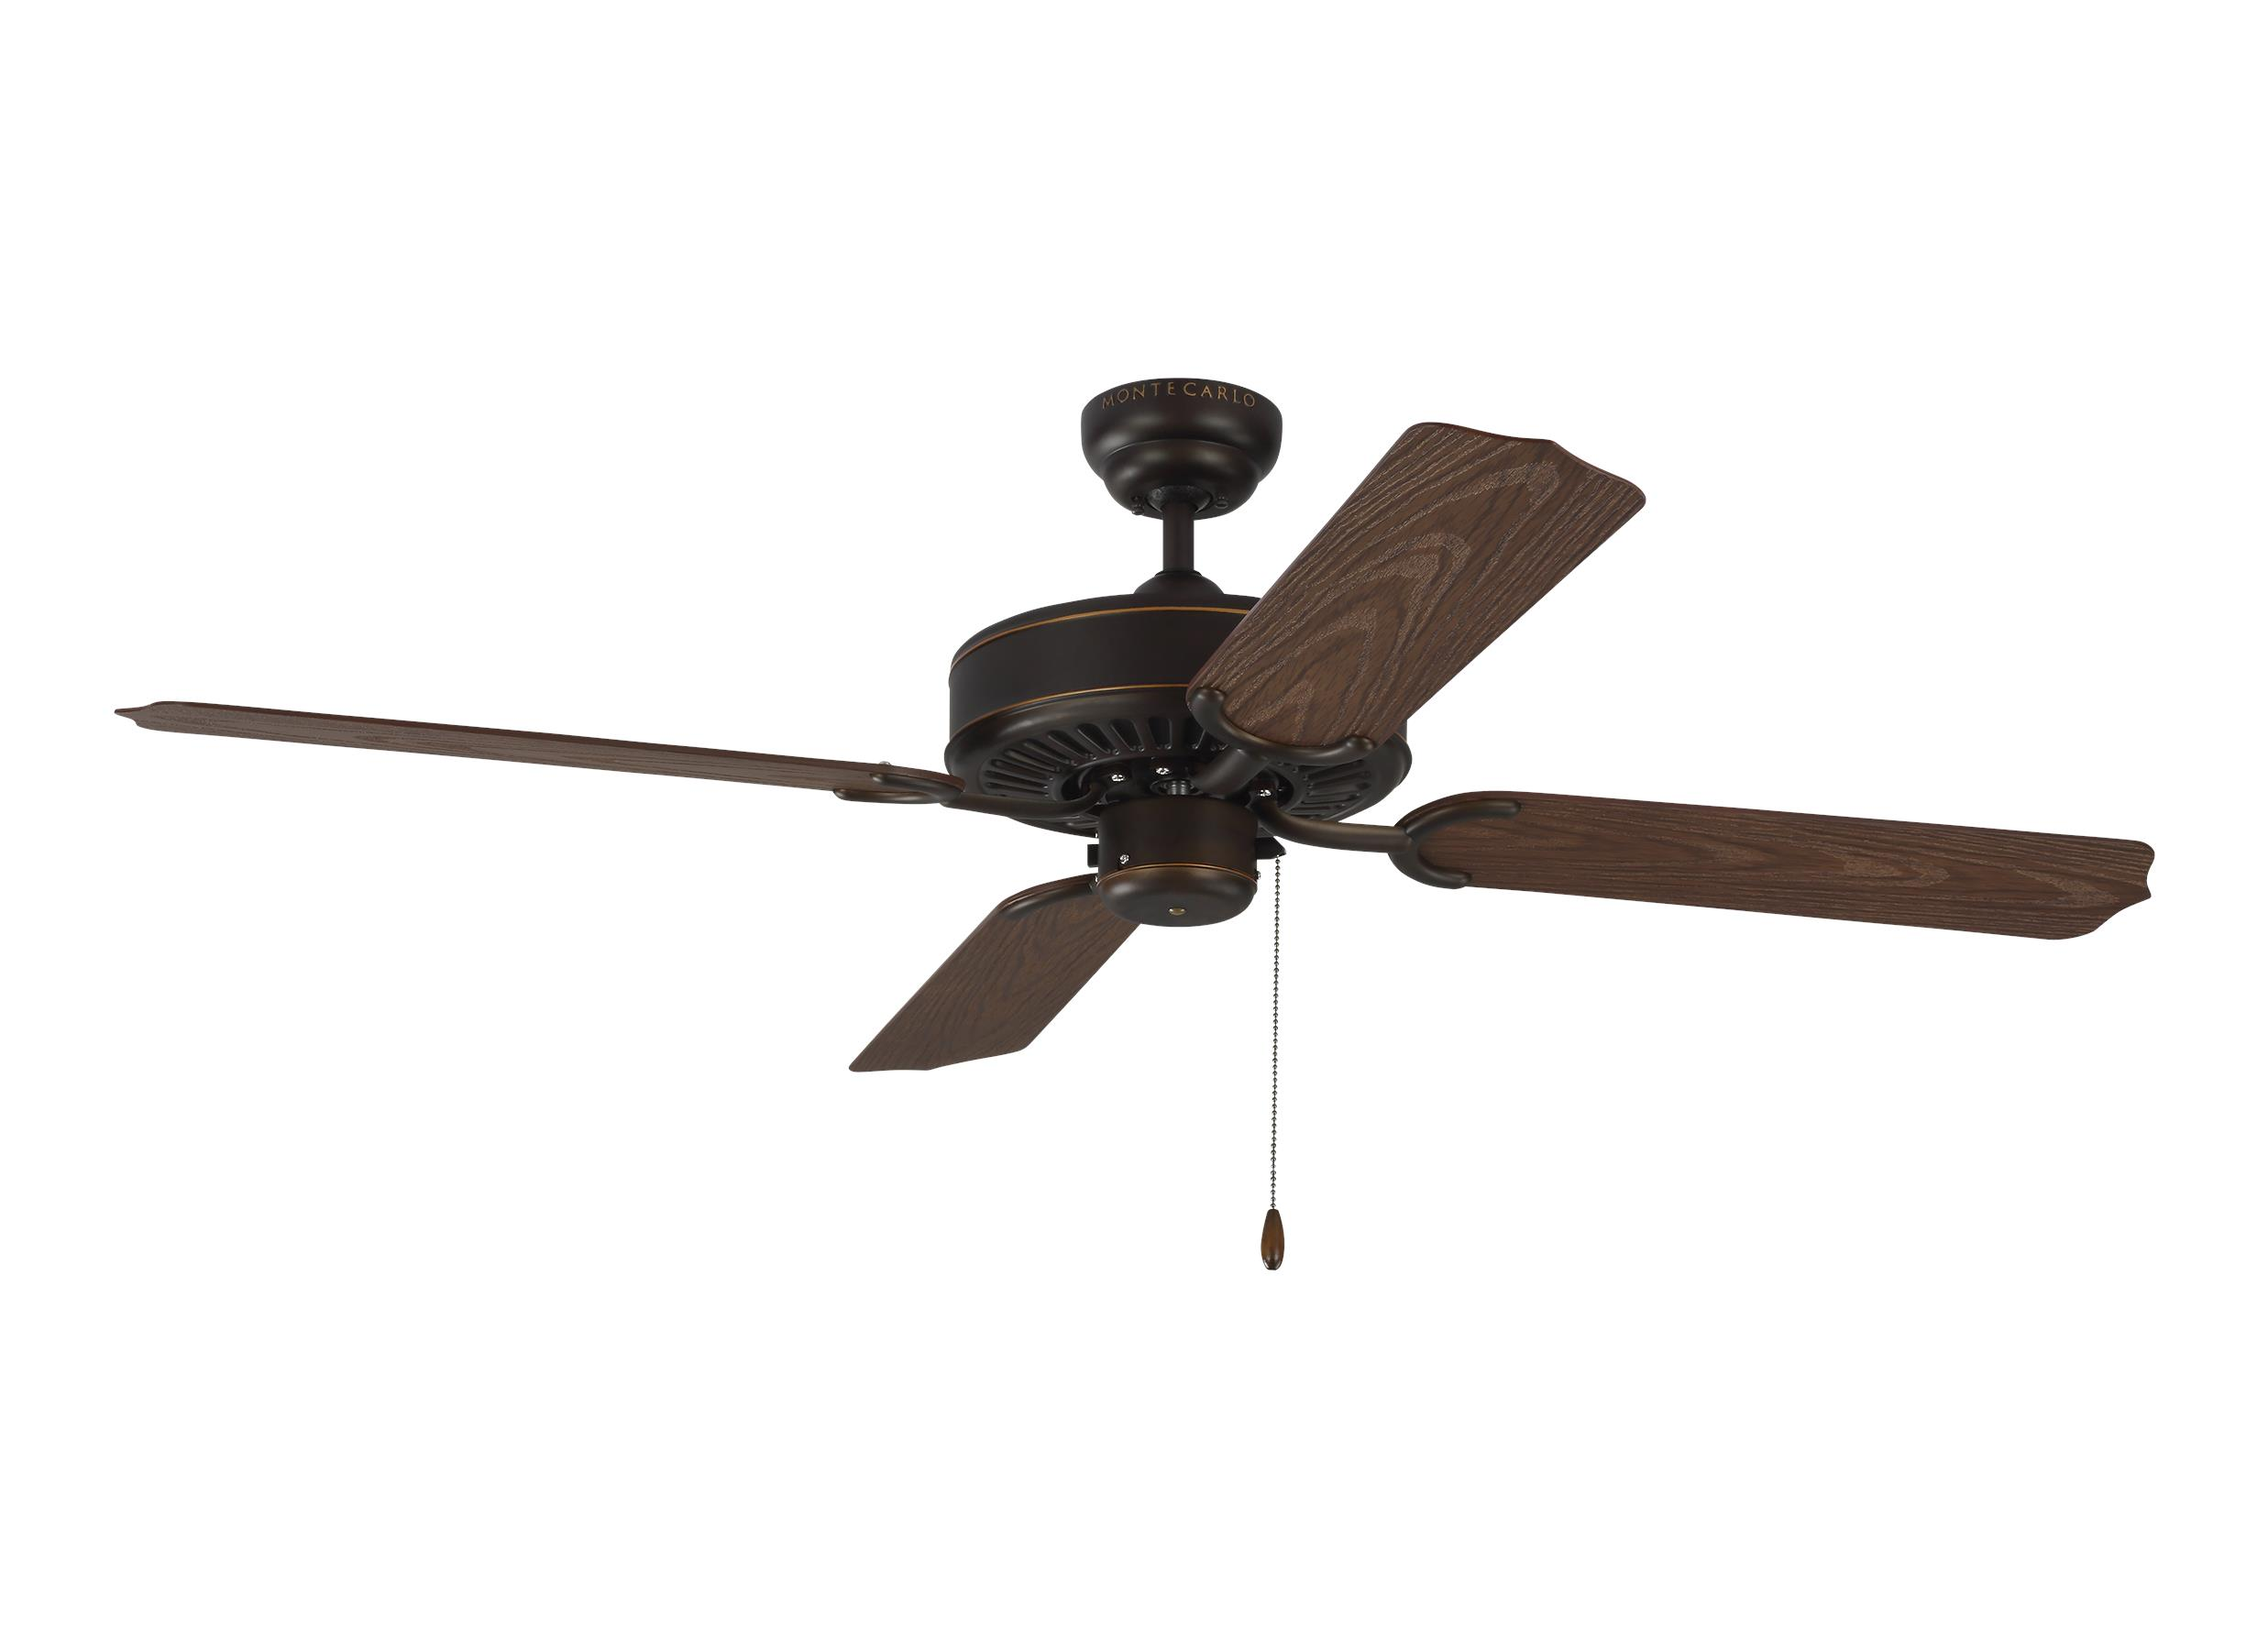 mrken can dc energy in ceiling hugger shop fan fans seabird white hr new henleyfan low